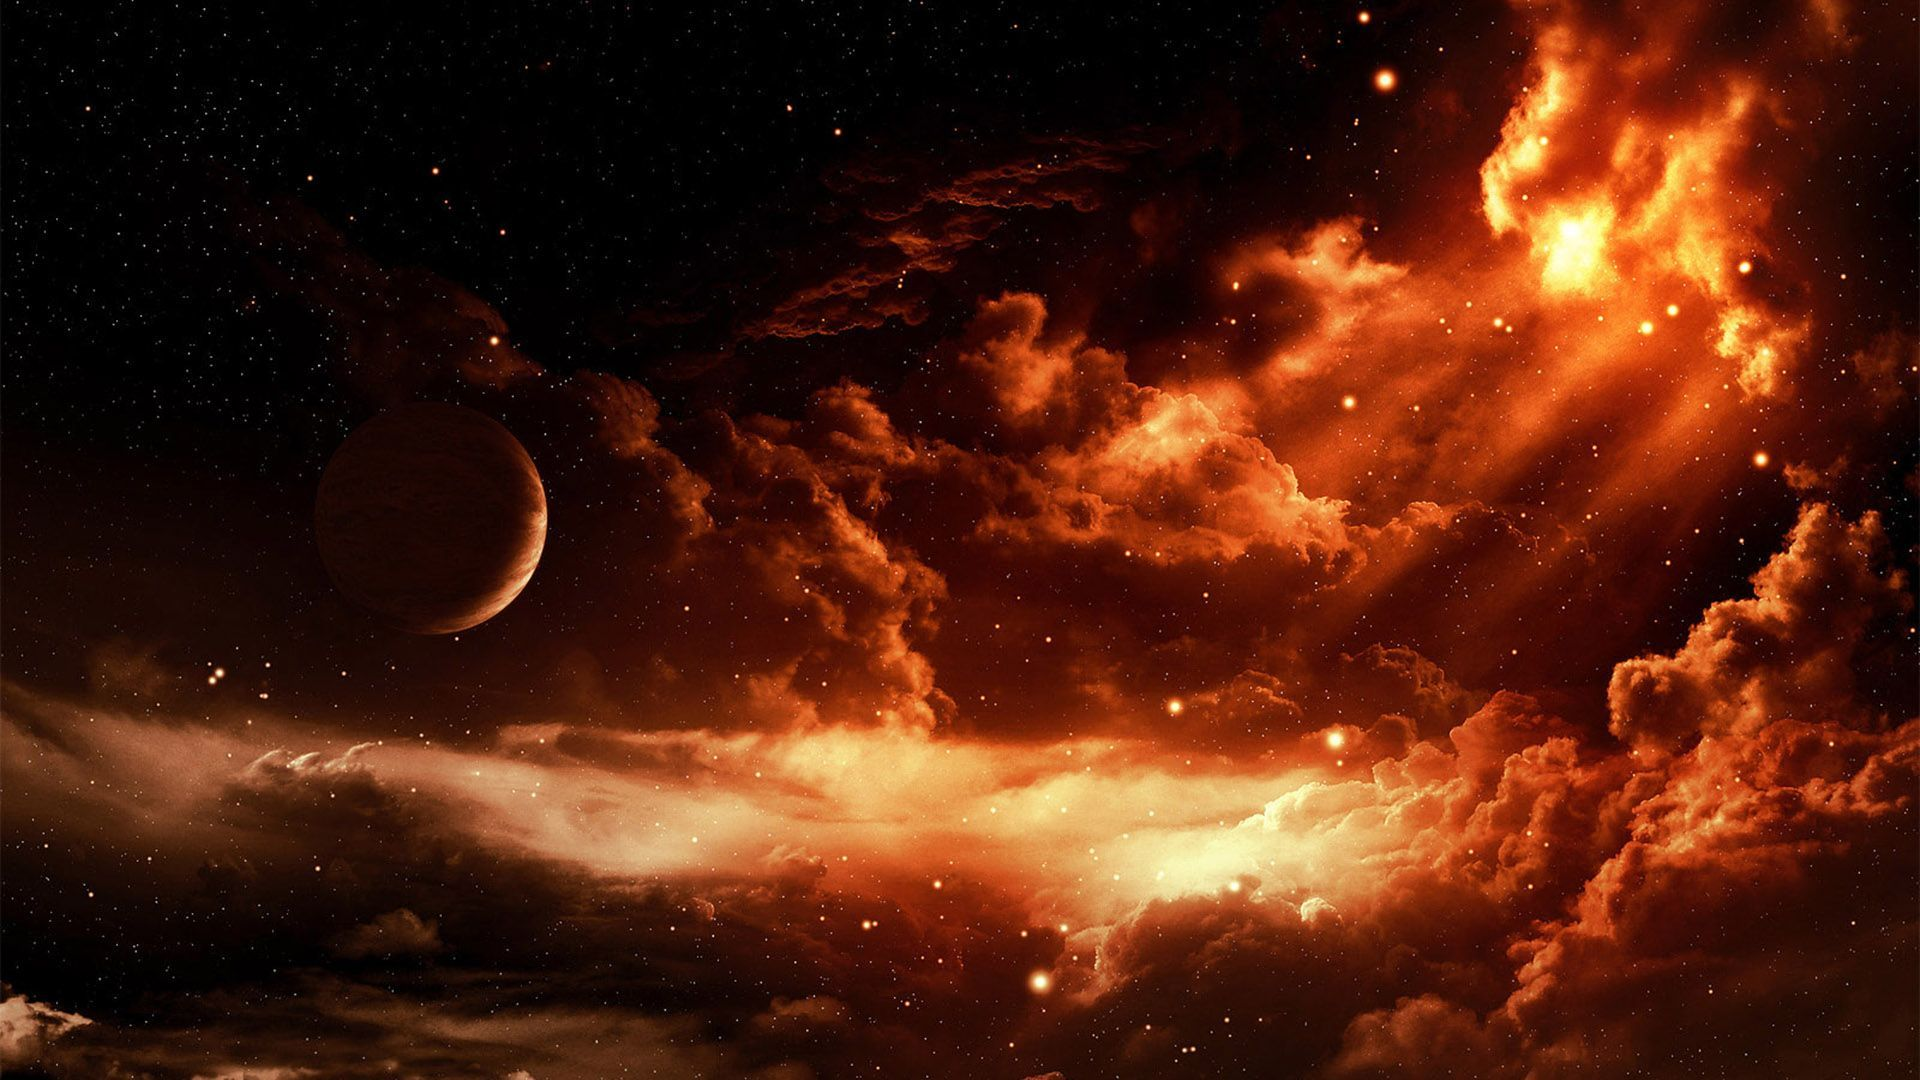 Awesome-Space-For-Android-wallpaper-wpc5802425